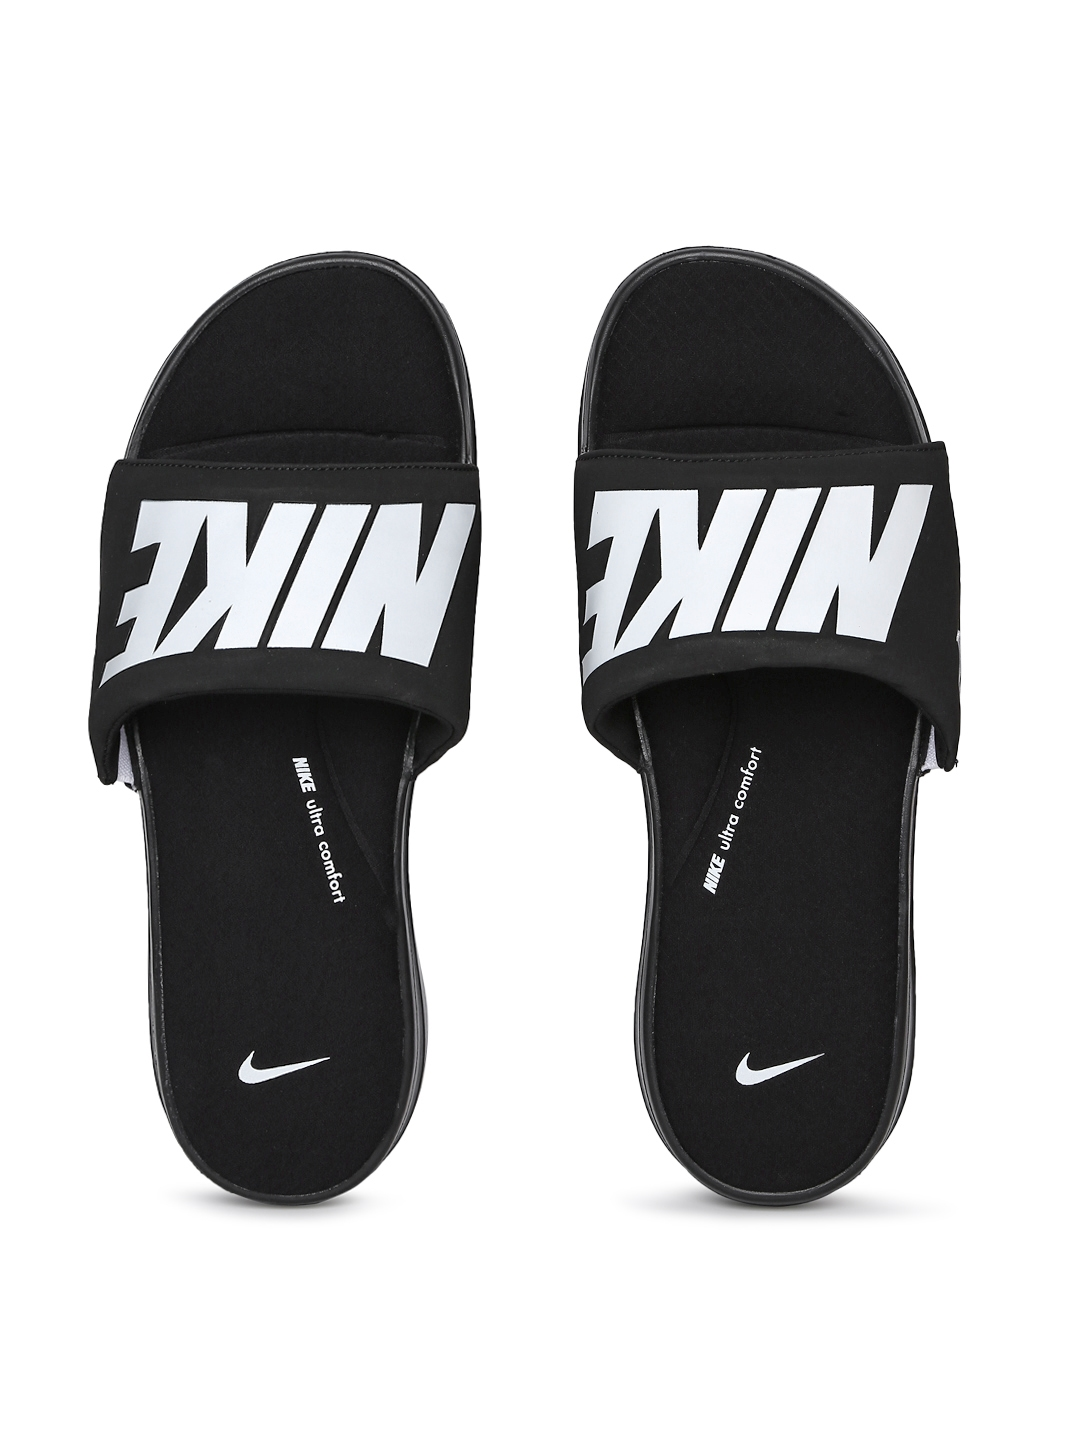 339c78fc47e3 Buy Nike Men Black   White Printed Ultra Comfort 3 Sliders - Flip ...